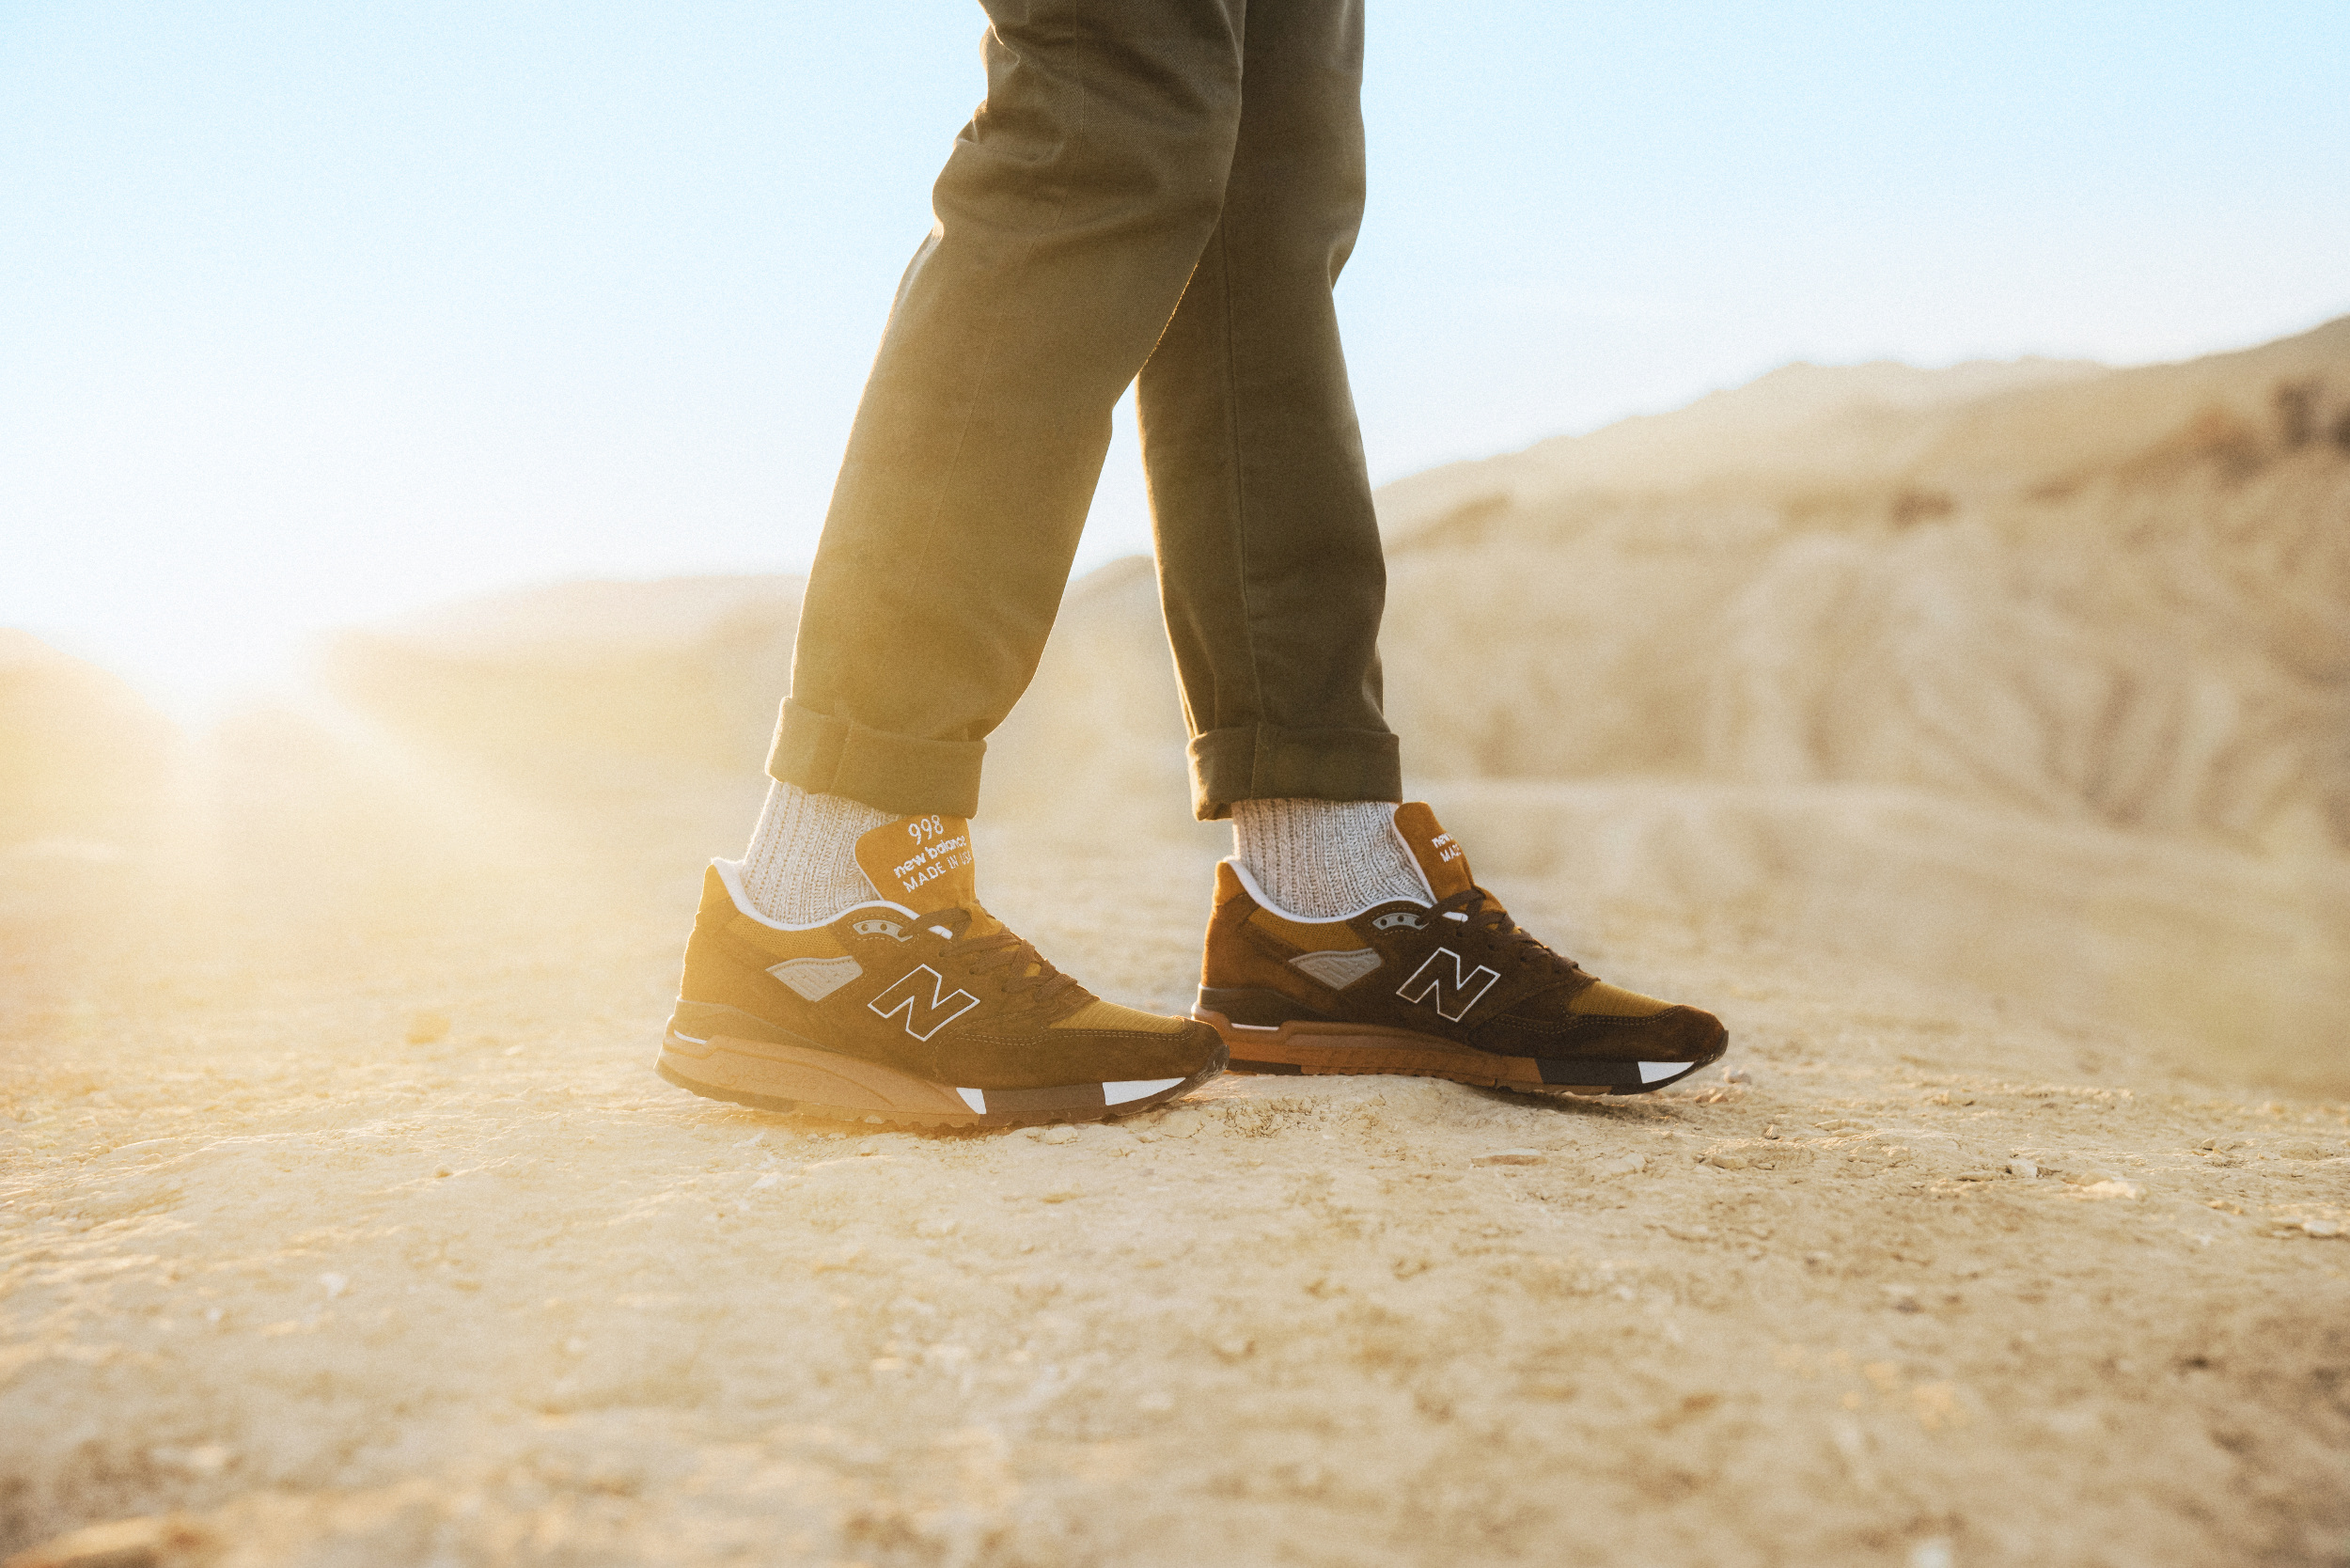 The limited edition Death Valley-inspired New Balance sneakers.